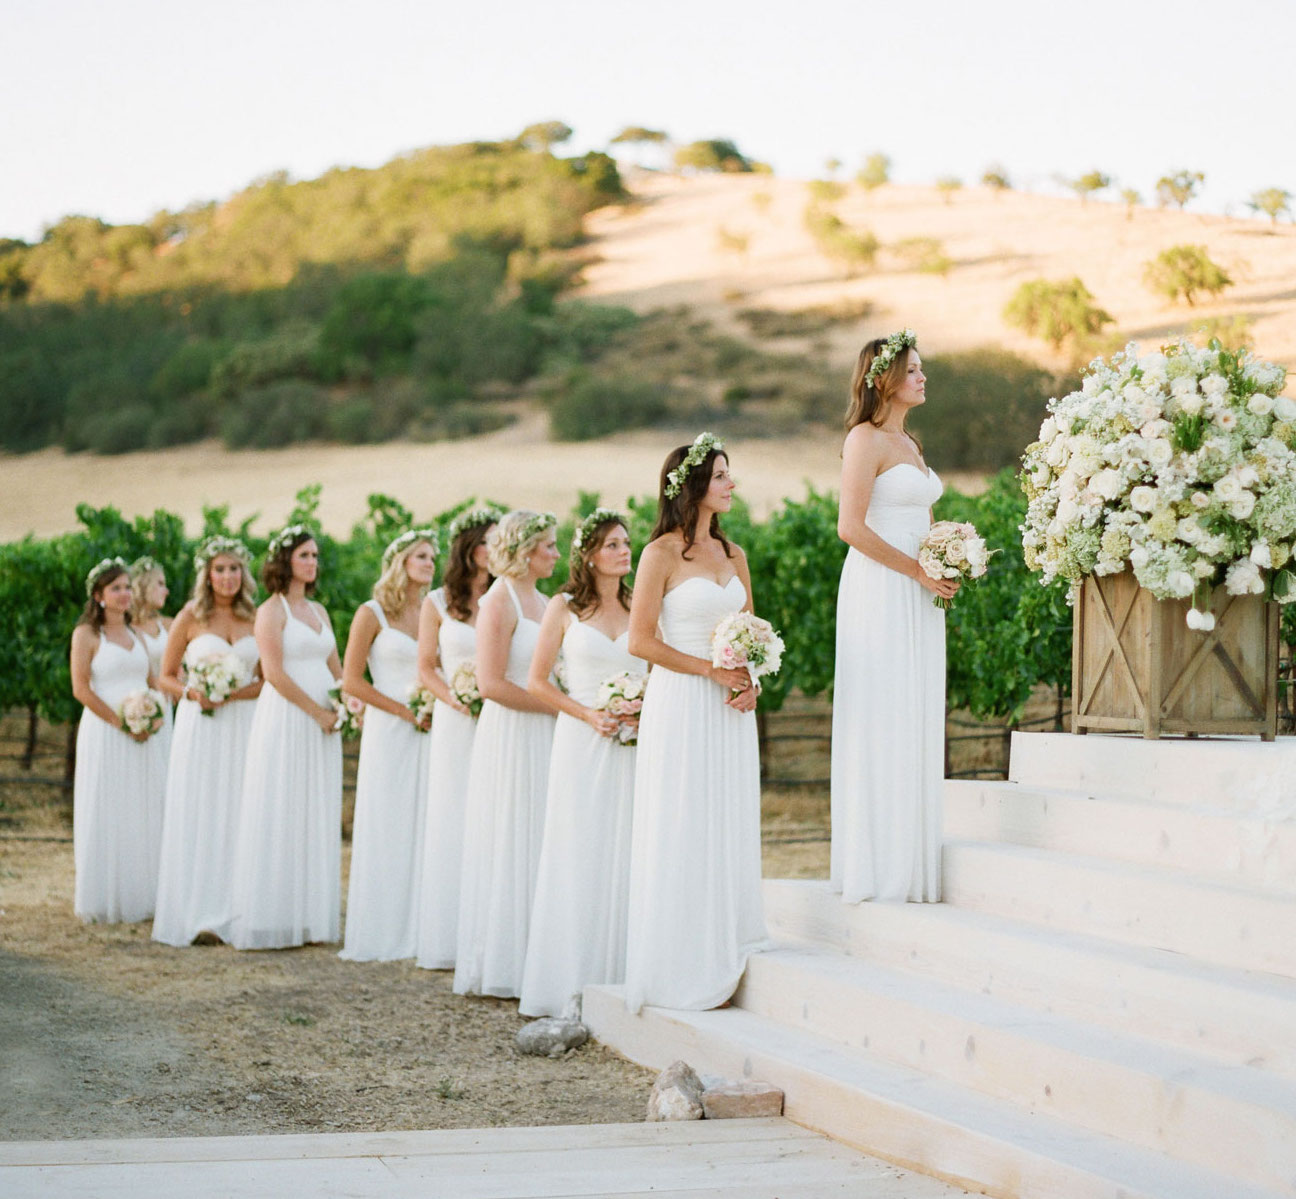 Bridesmaids at ceremony different dresses same color white